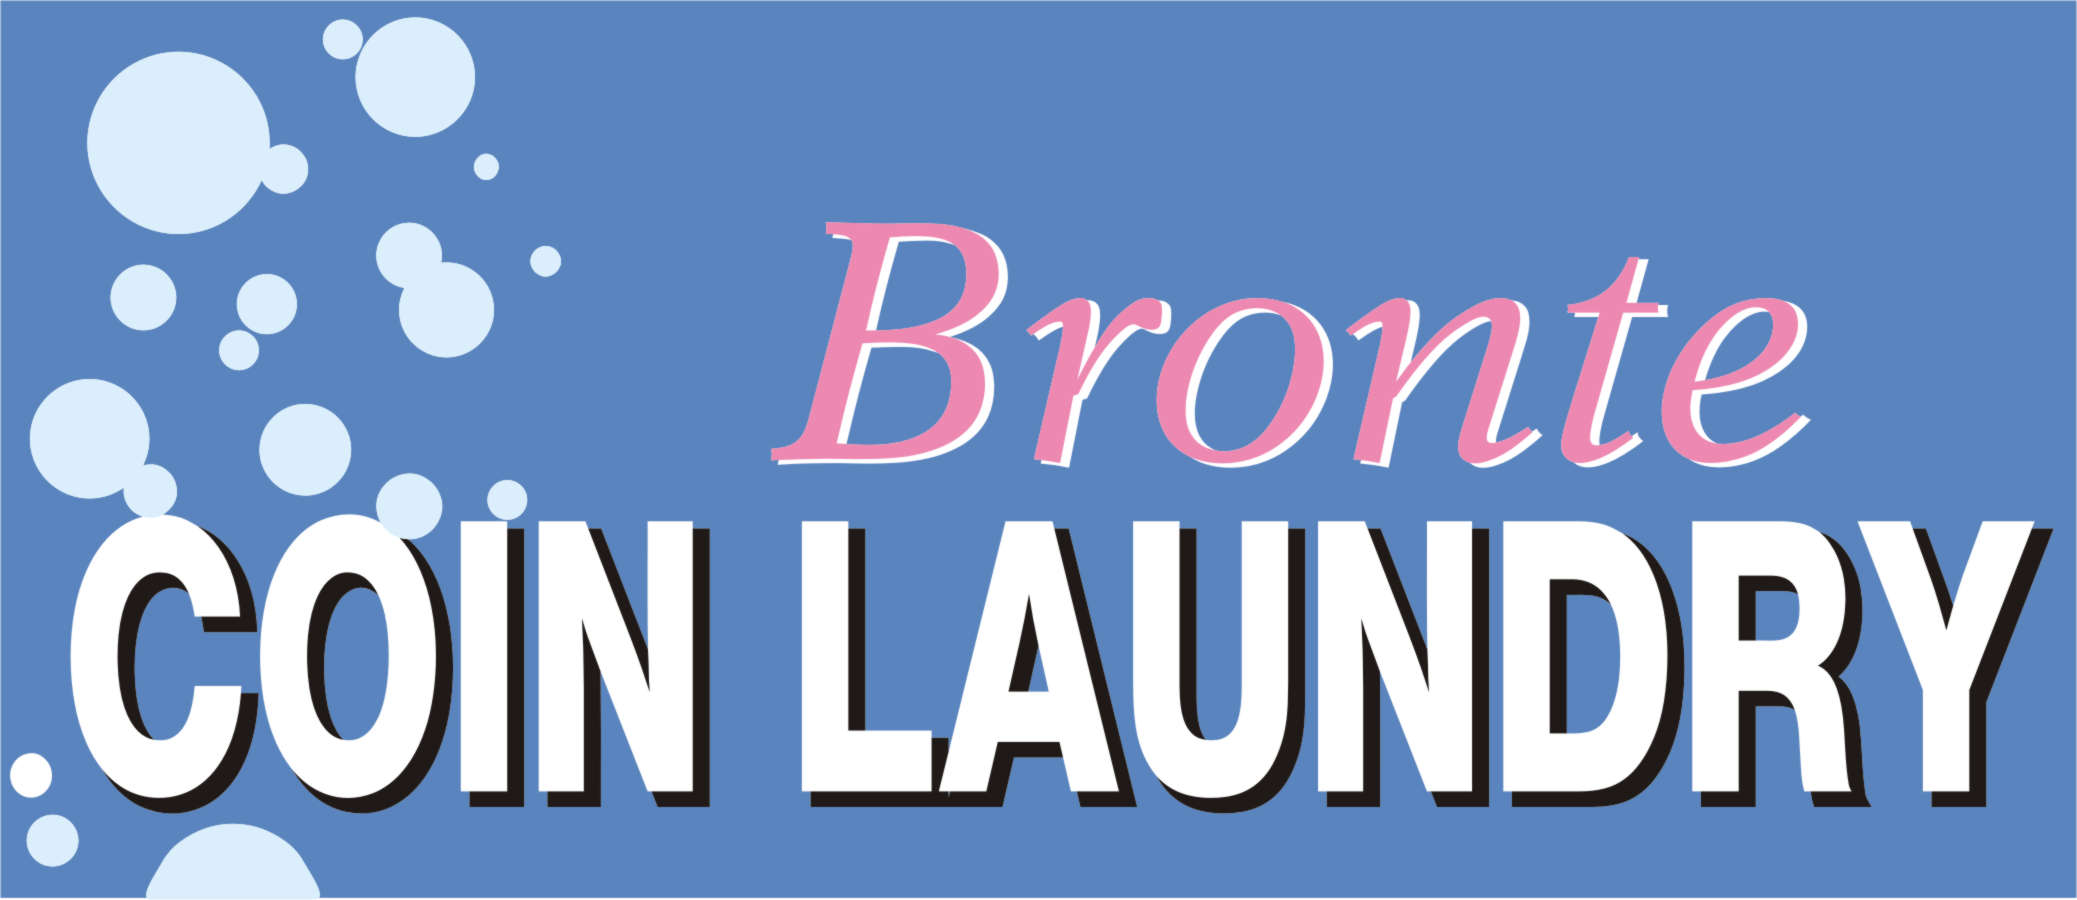 Bronte Coin Laundry logo